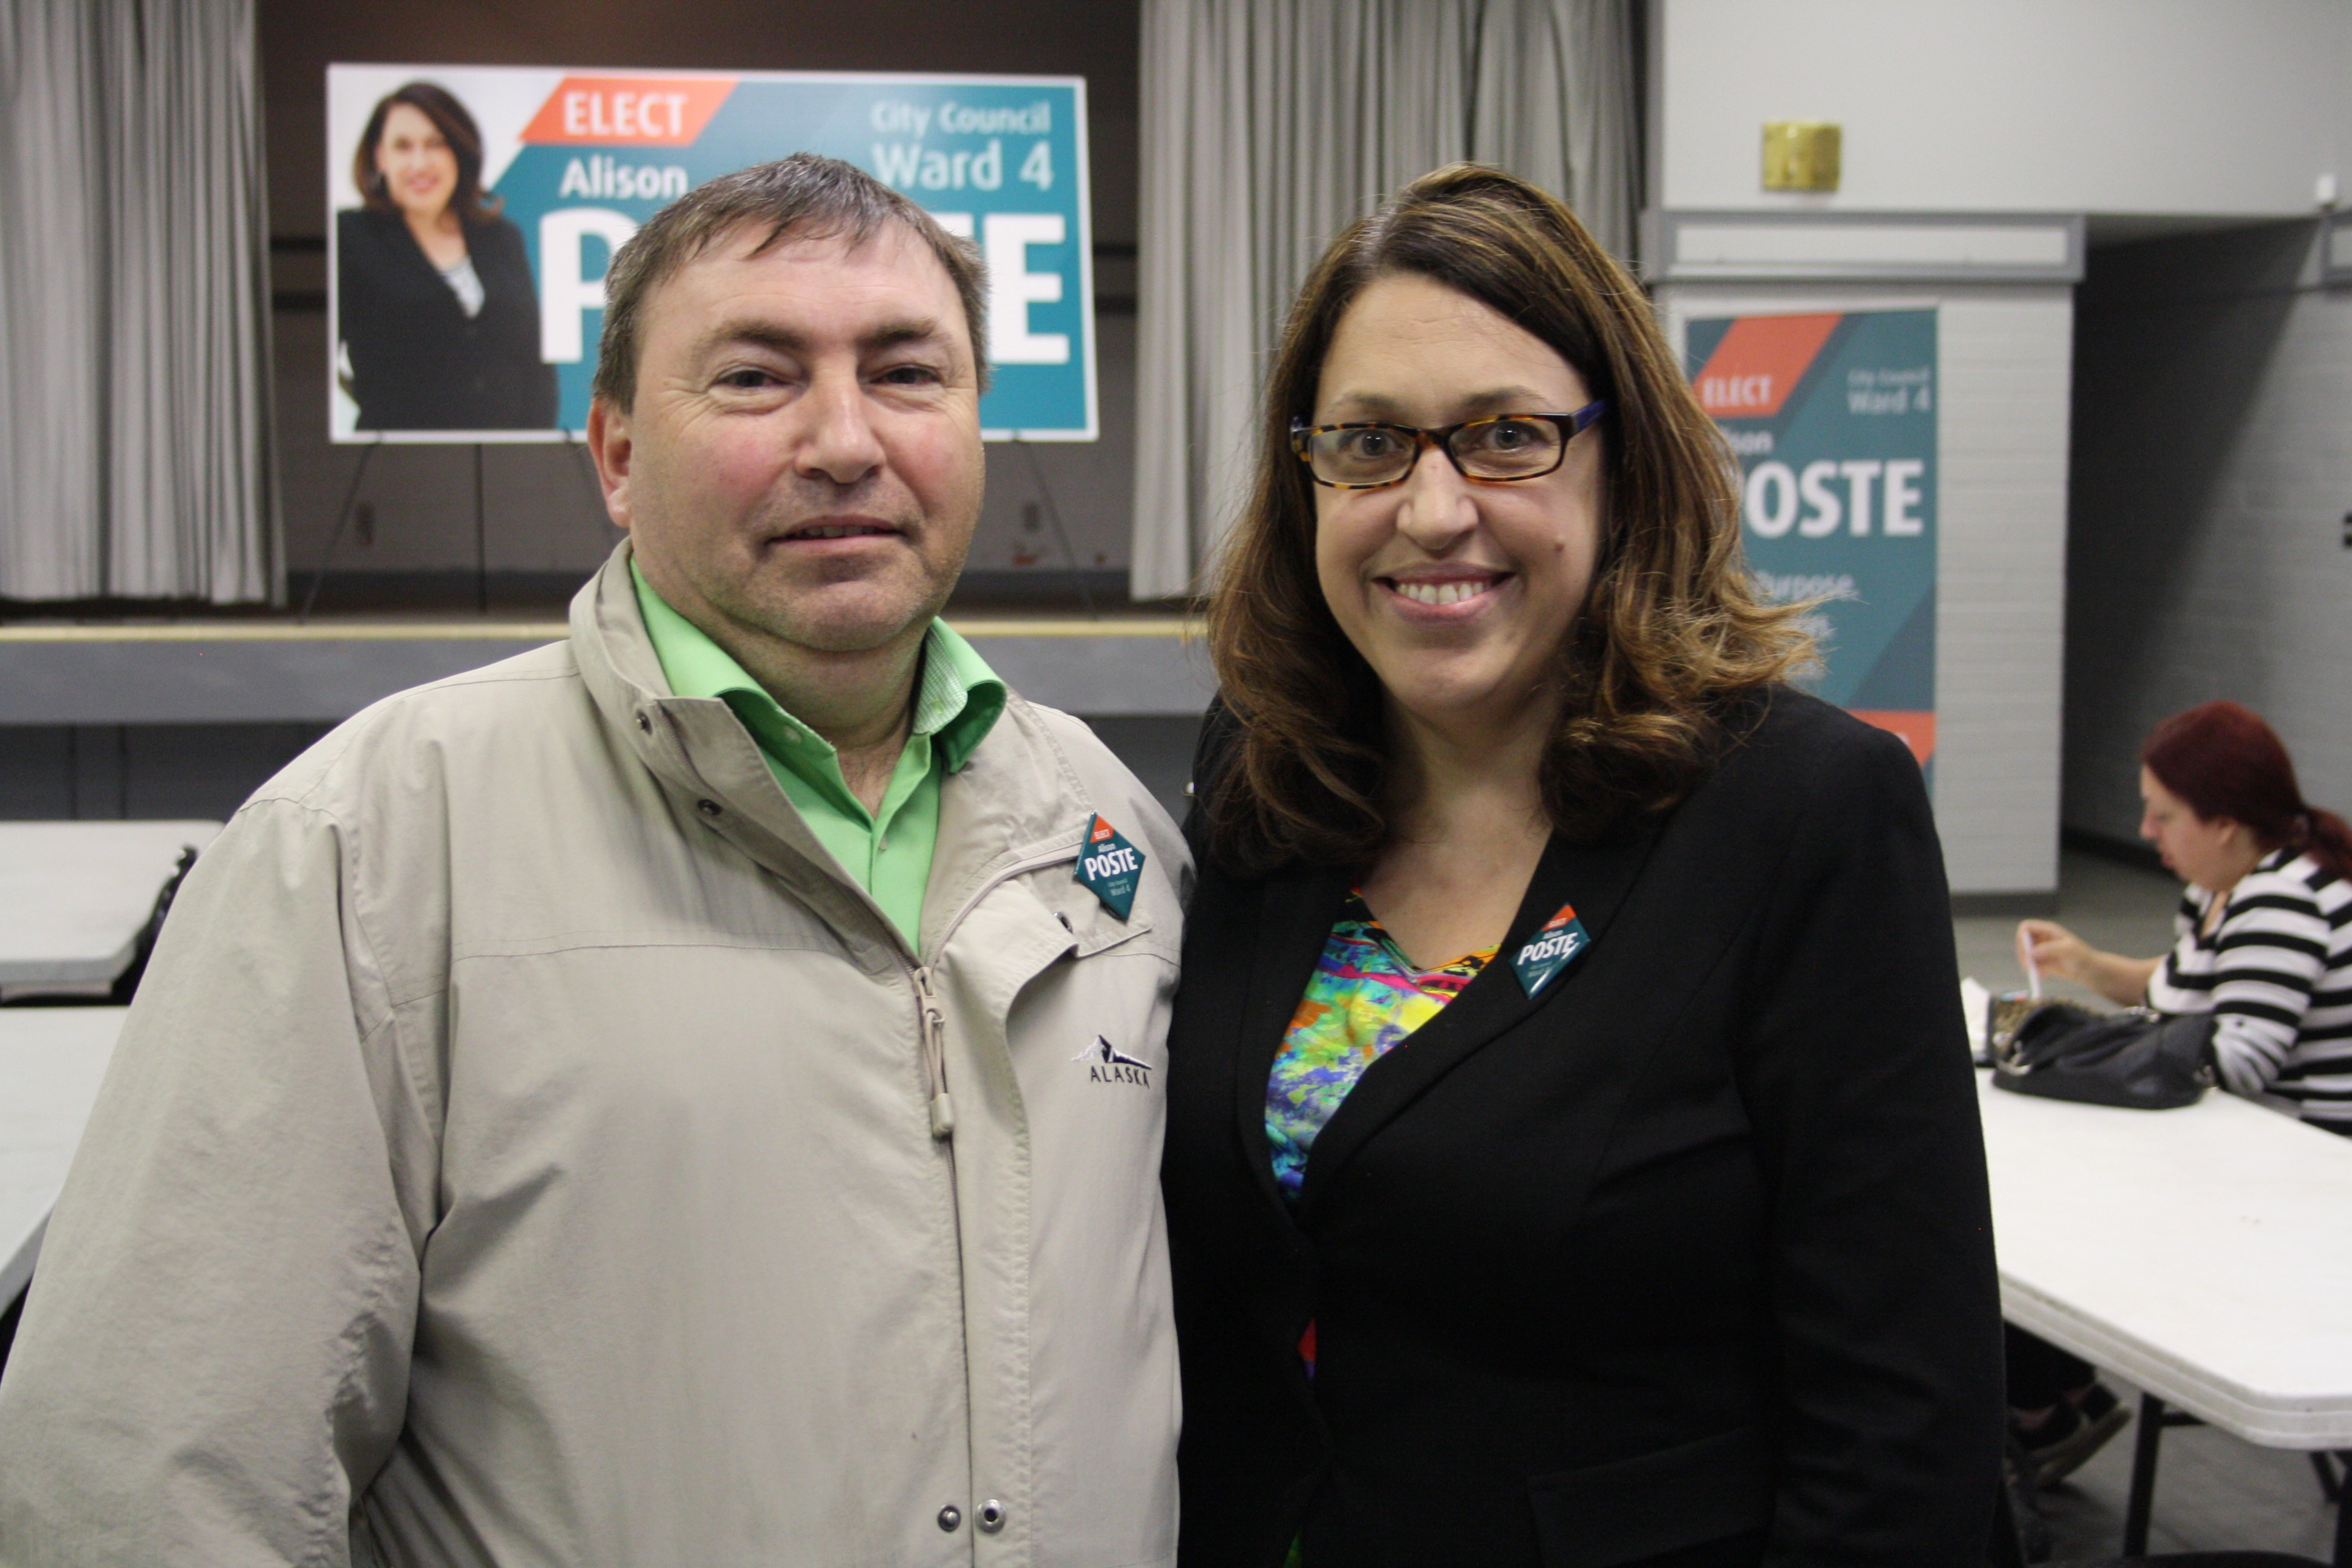 Belvedere Community League President, Ray Walmsley with Alison Poste